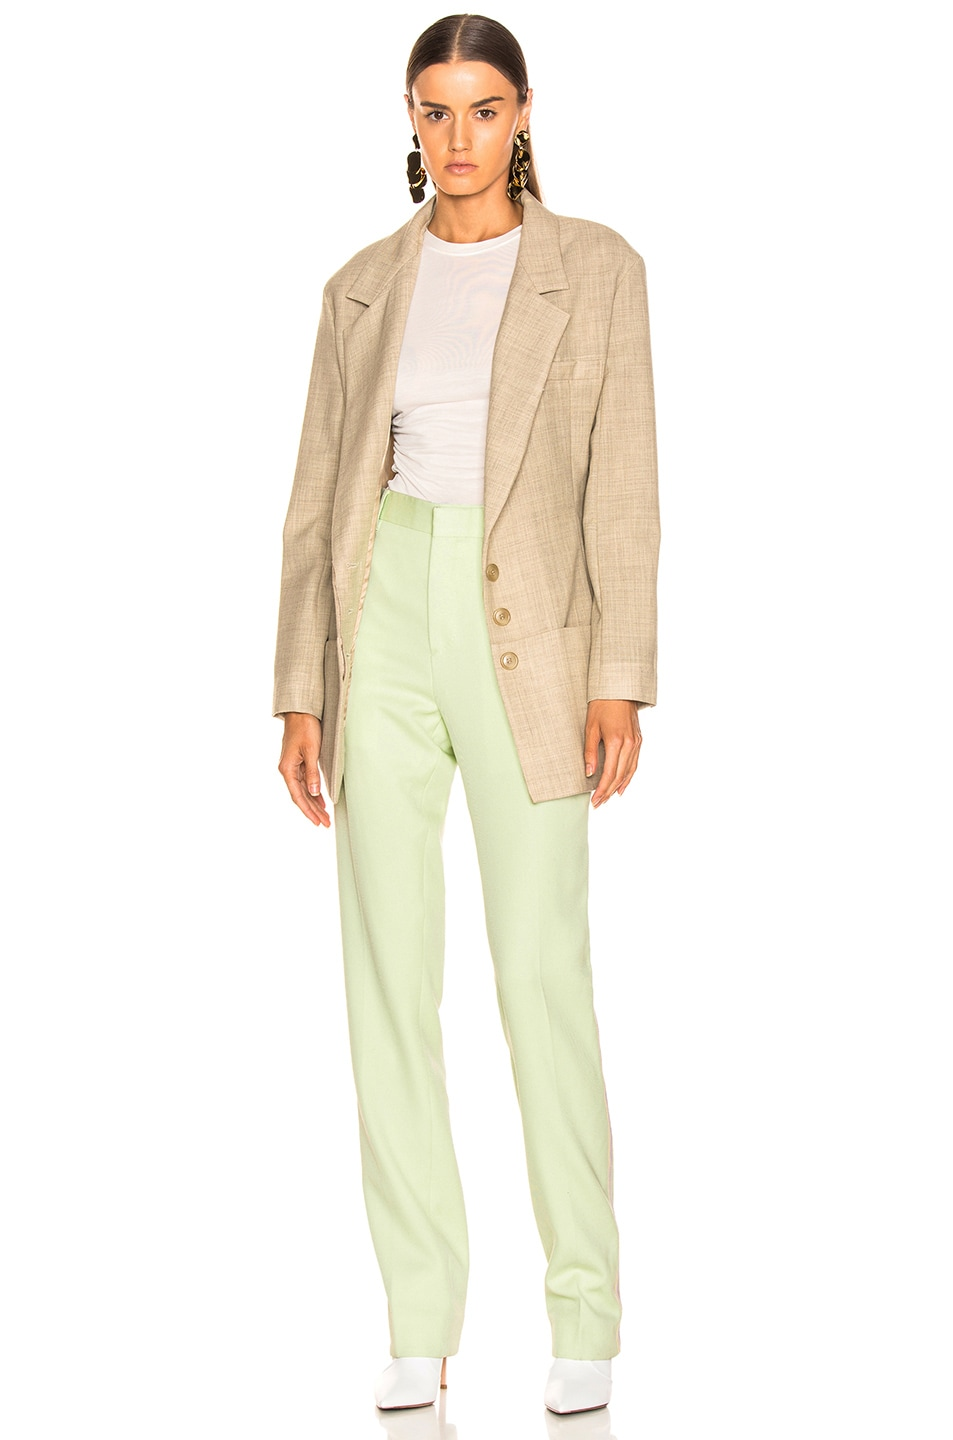 Image 5 of CALVIN KLEIN 205W39NYC Wool Twill Uniform Pant in Arcadian Green & Burgundy & Ecru